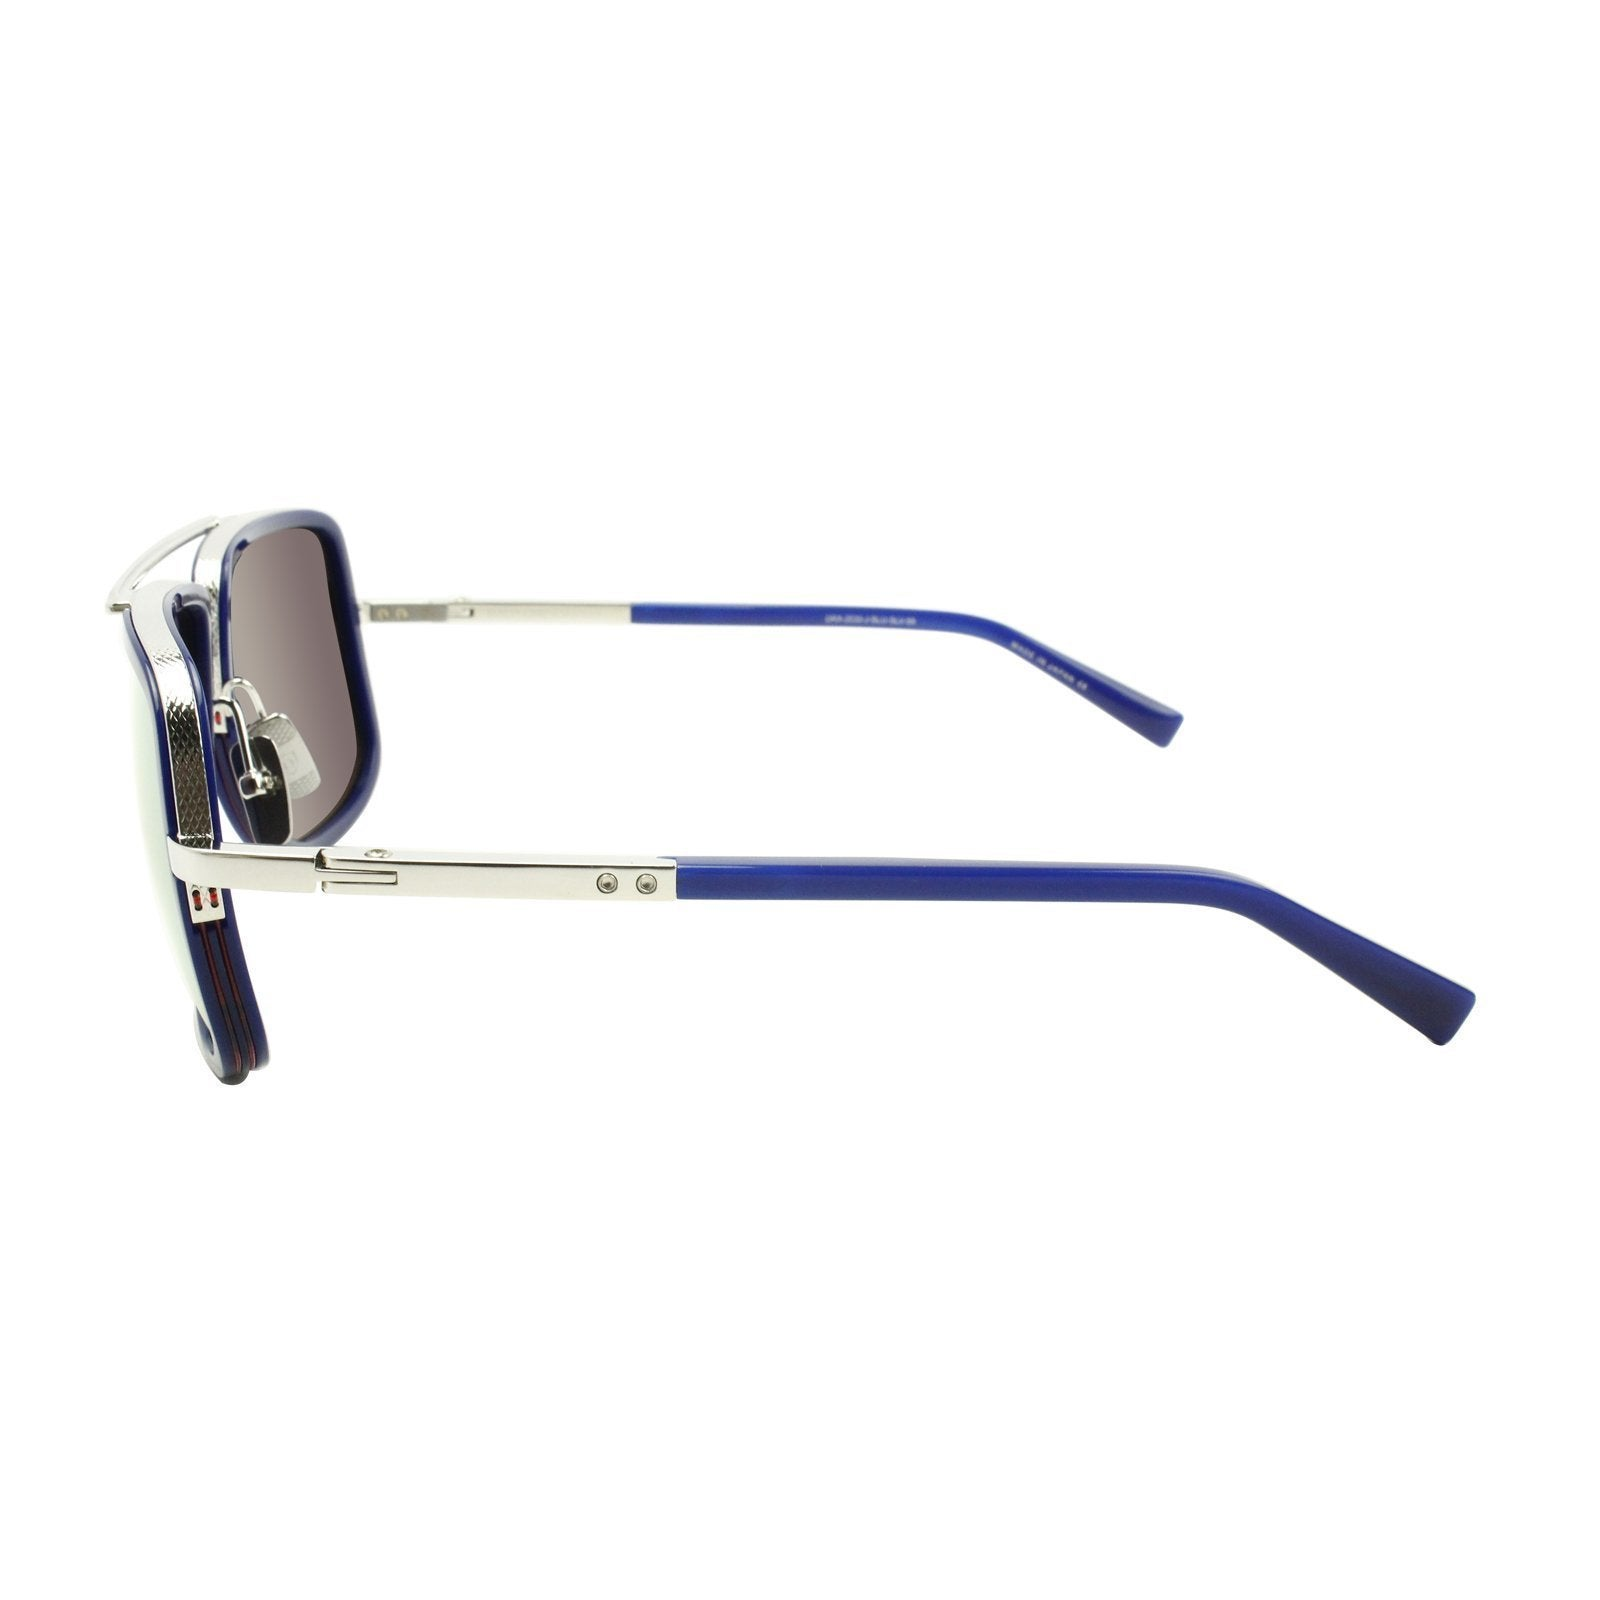 c454e640d2f Shop Dita Mach One DRX-2030J Titanium Blue Frame Silver Flash Lens  Sunglasses - Free Shipping Today - Overstock - 19563620